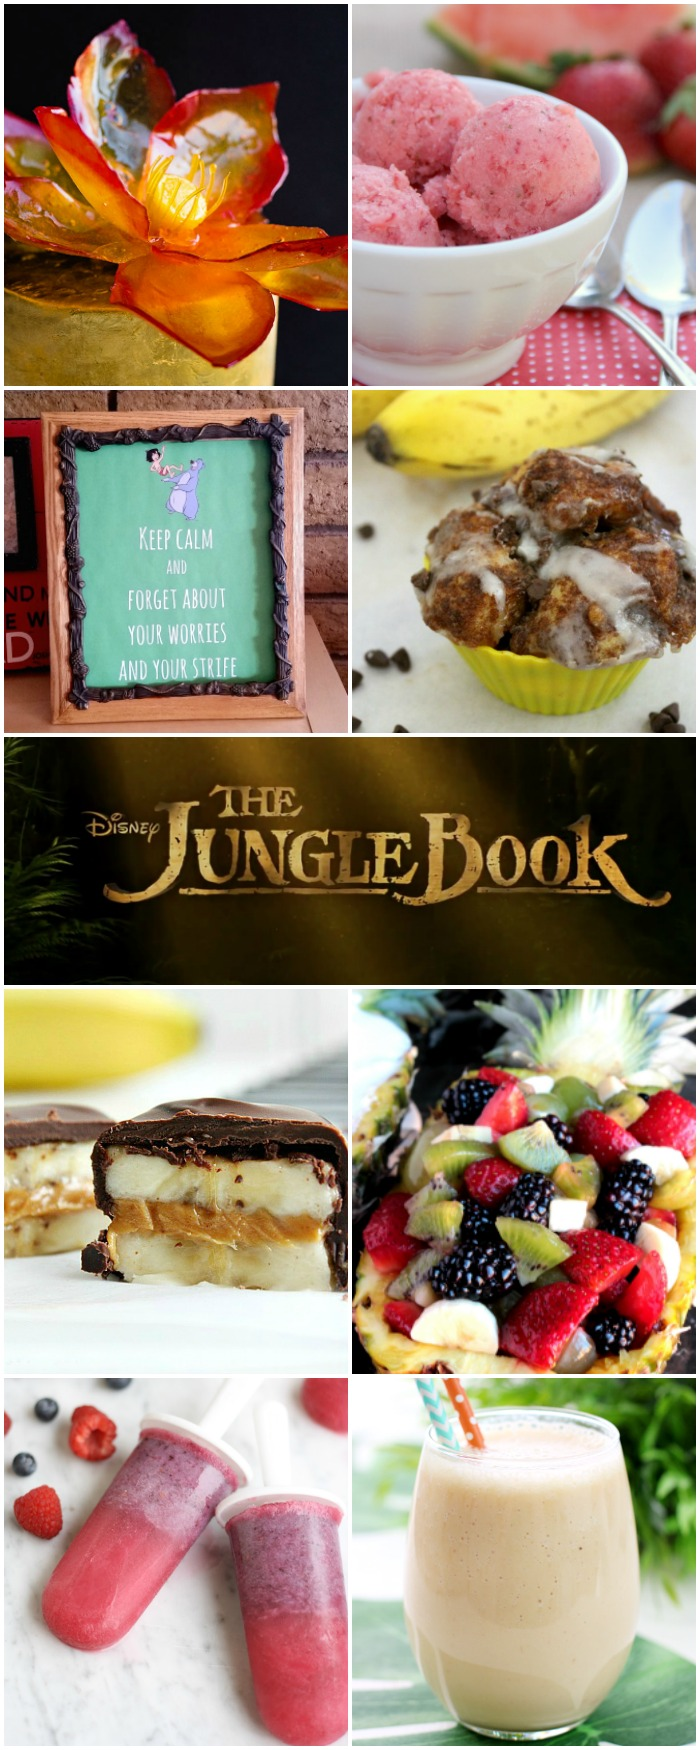 The Jungle Book Movie Inspired Recipes and Crafts